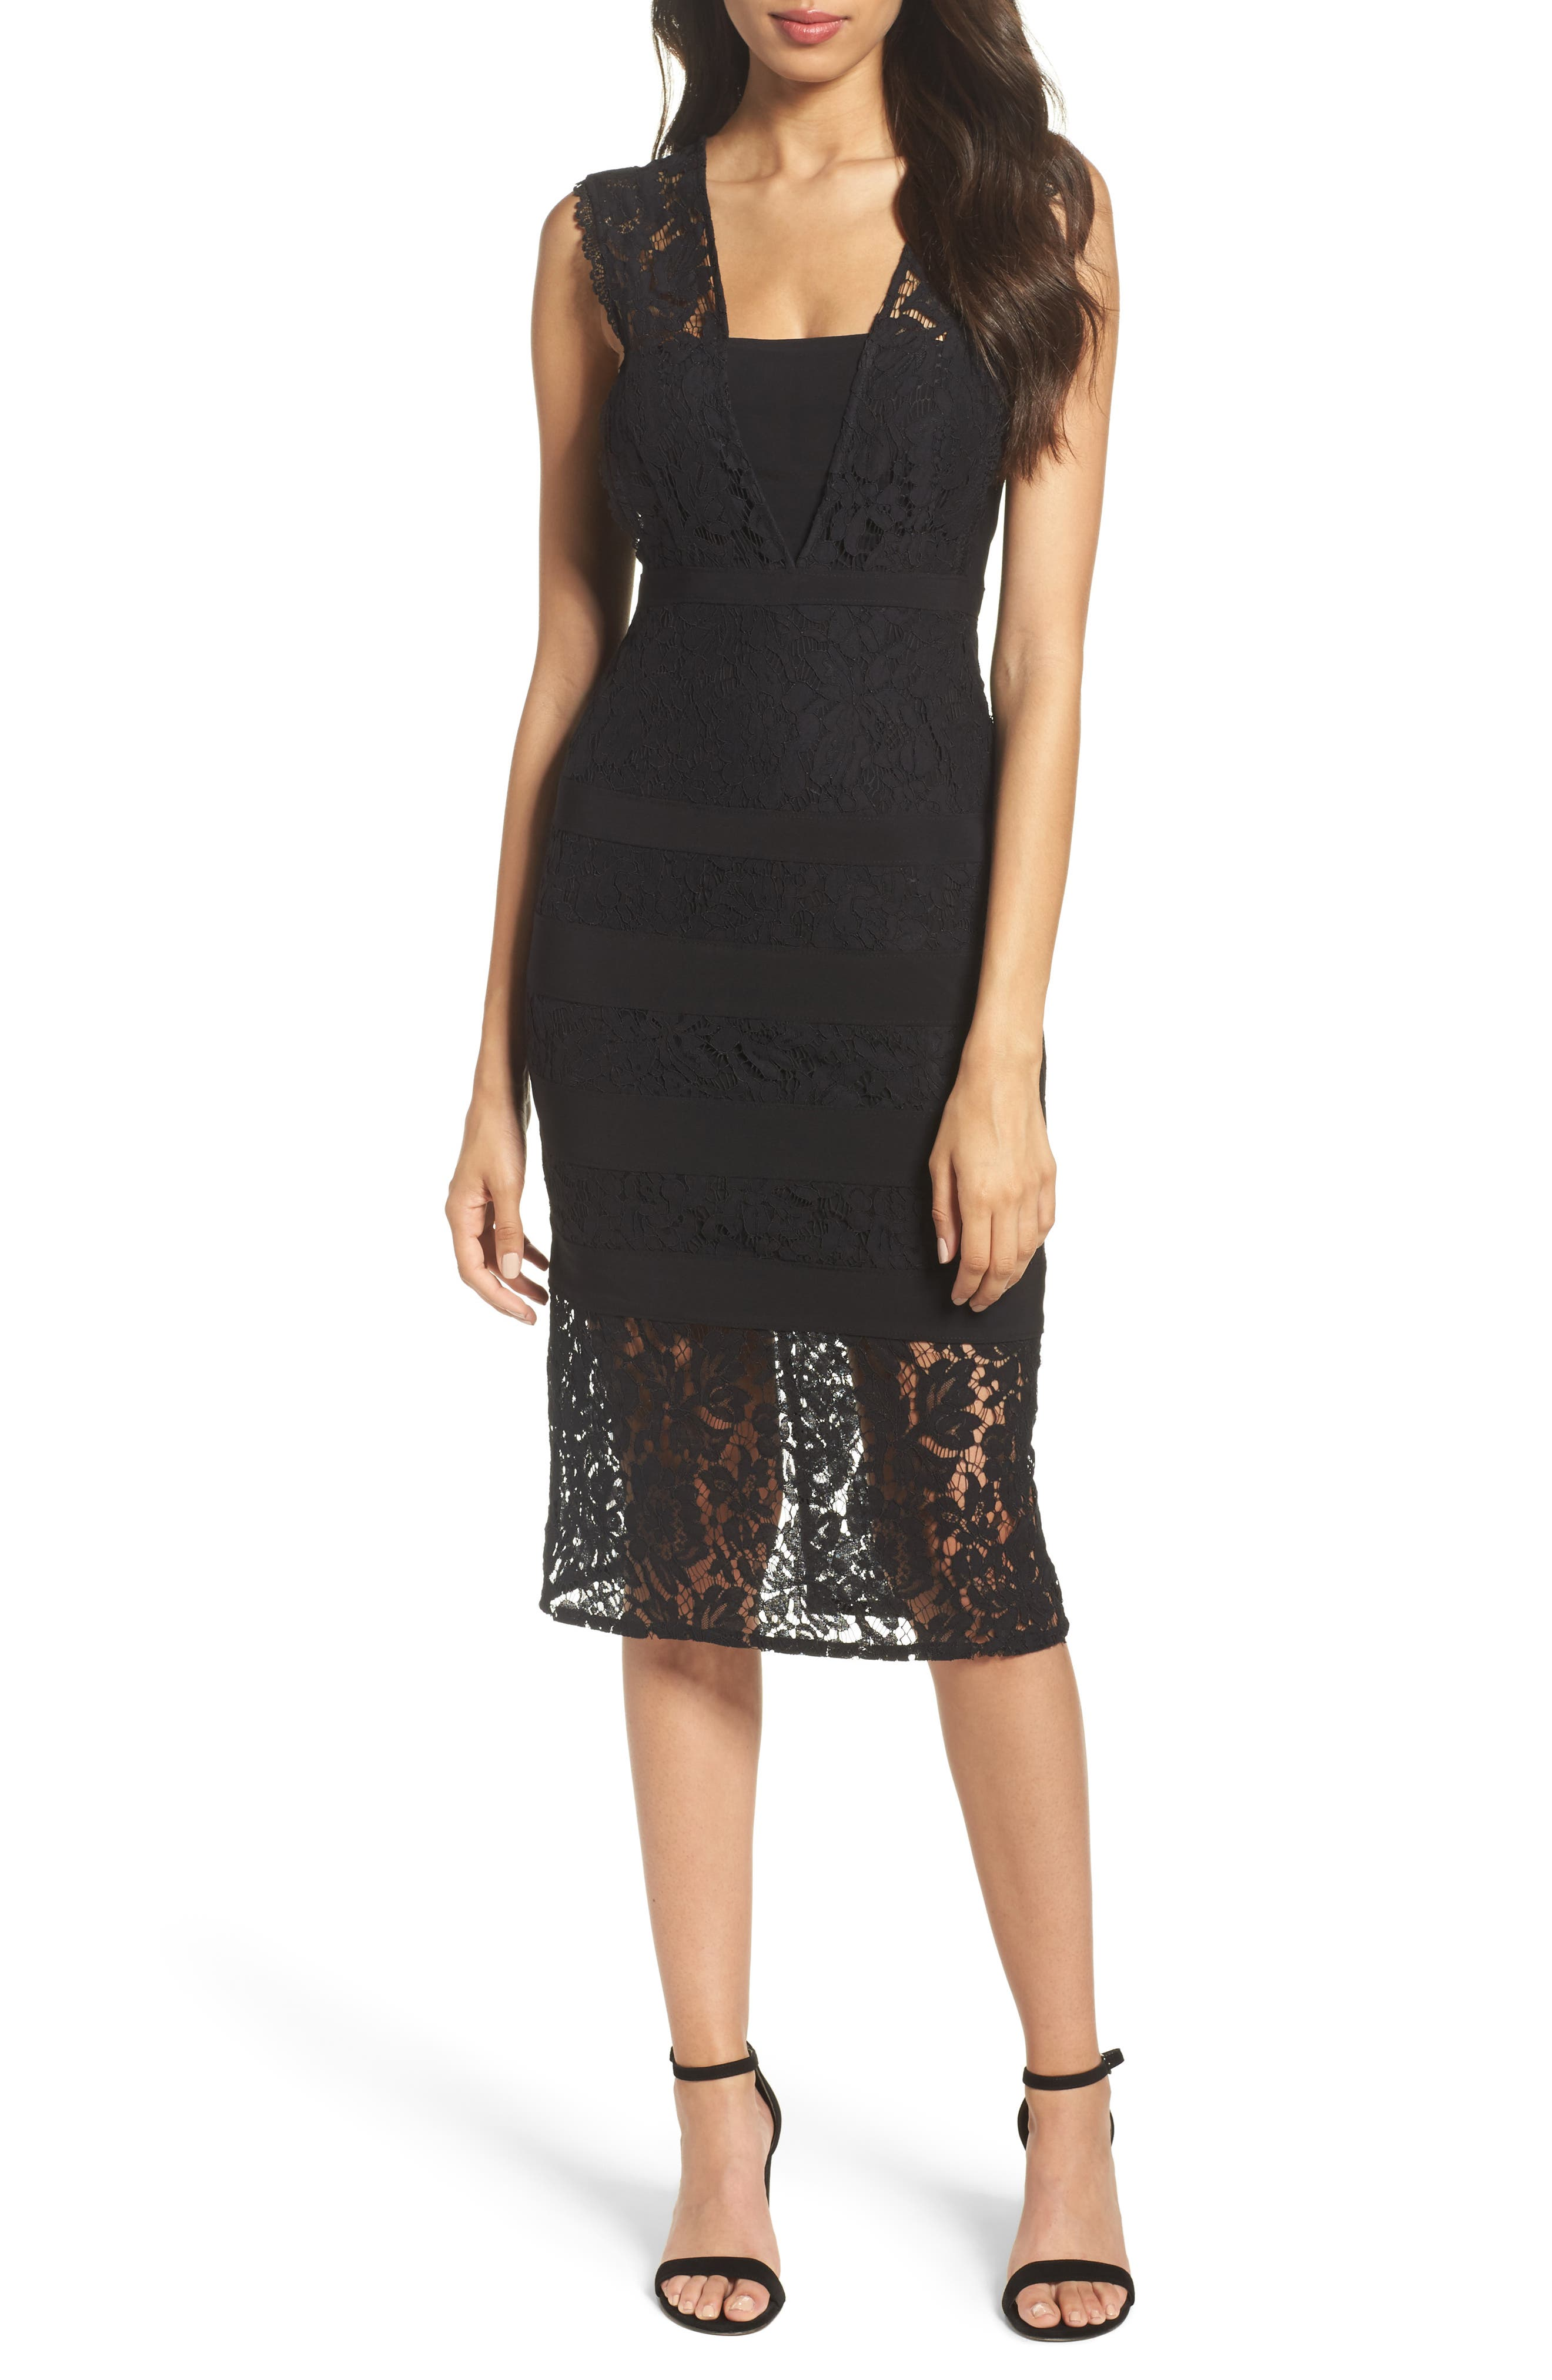 Adrianna Papell Cynthia Lace Sheath Dress